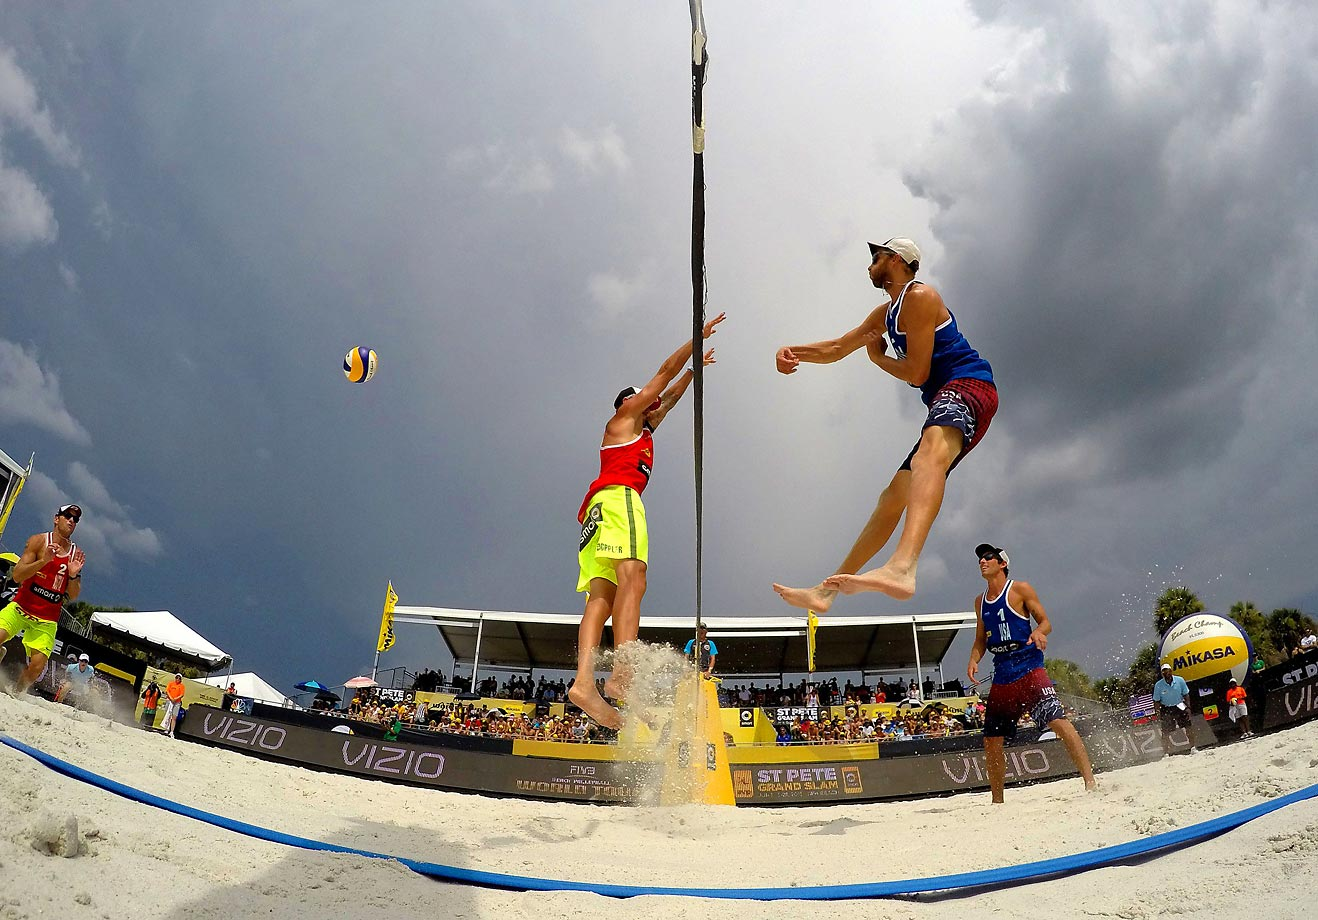 Theodore Brunner of the U.S. spikes the ball as teammate Nick Lucena looks on against Clemens Doppler and Alexander Horst of Austria during the bronze medal match.